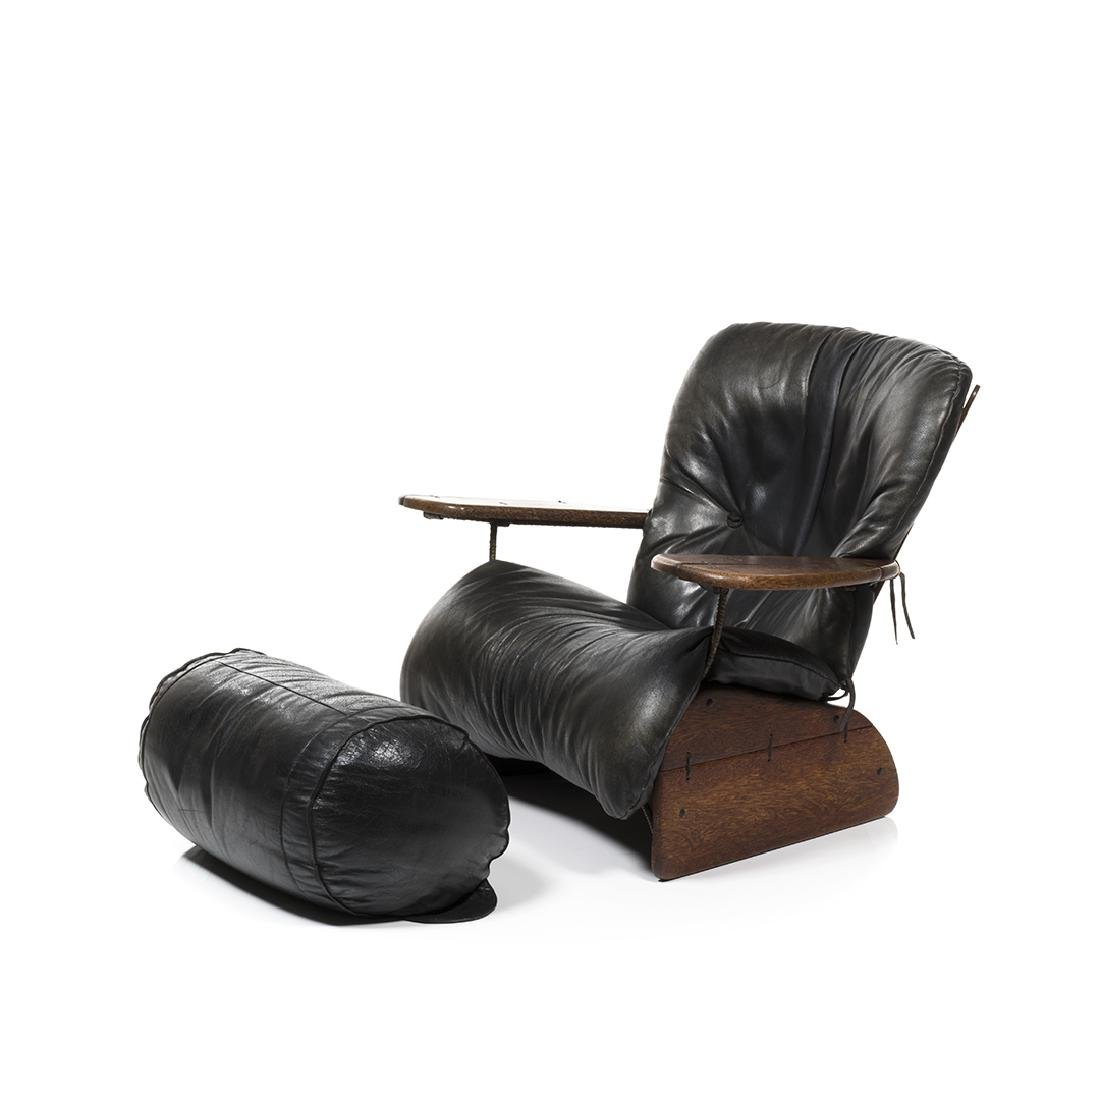 Pacific Green Lounge Chair and Ottoman